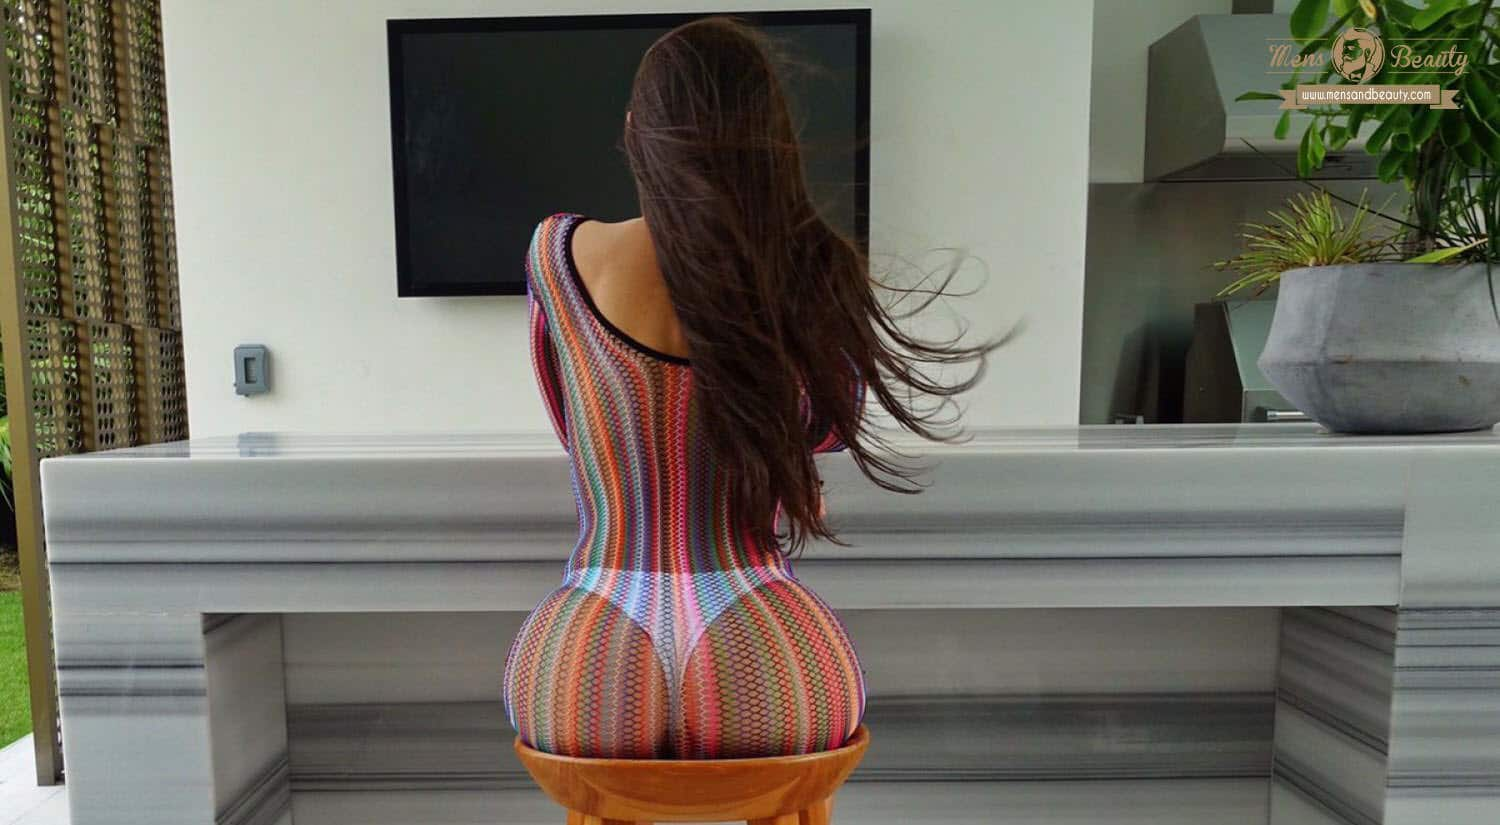 chicas sexys mejores traseros de mujeres jen selter